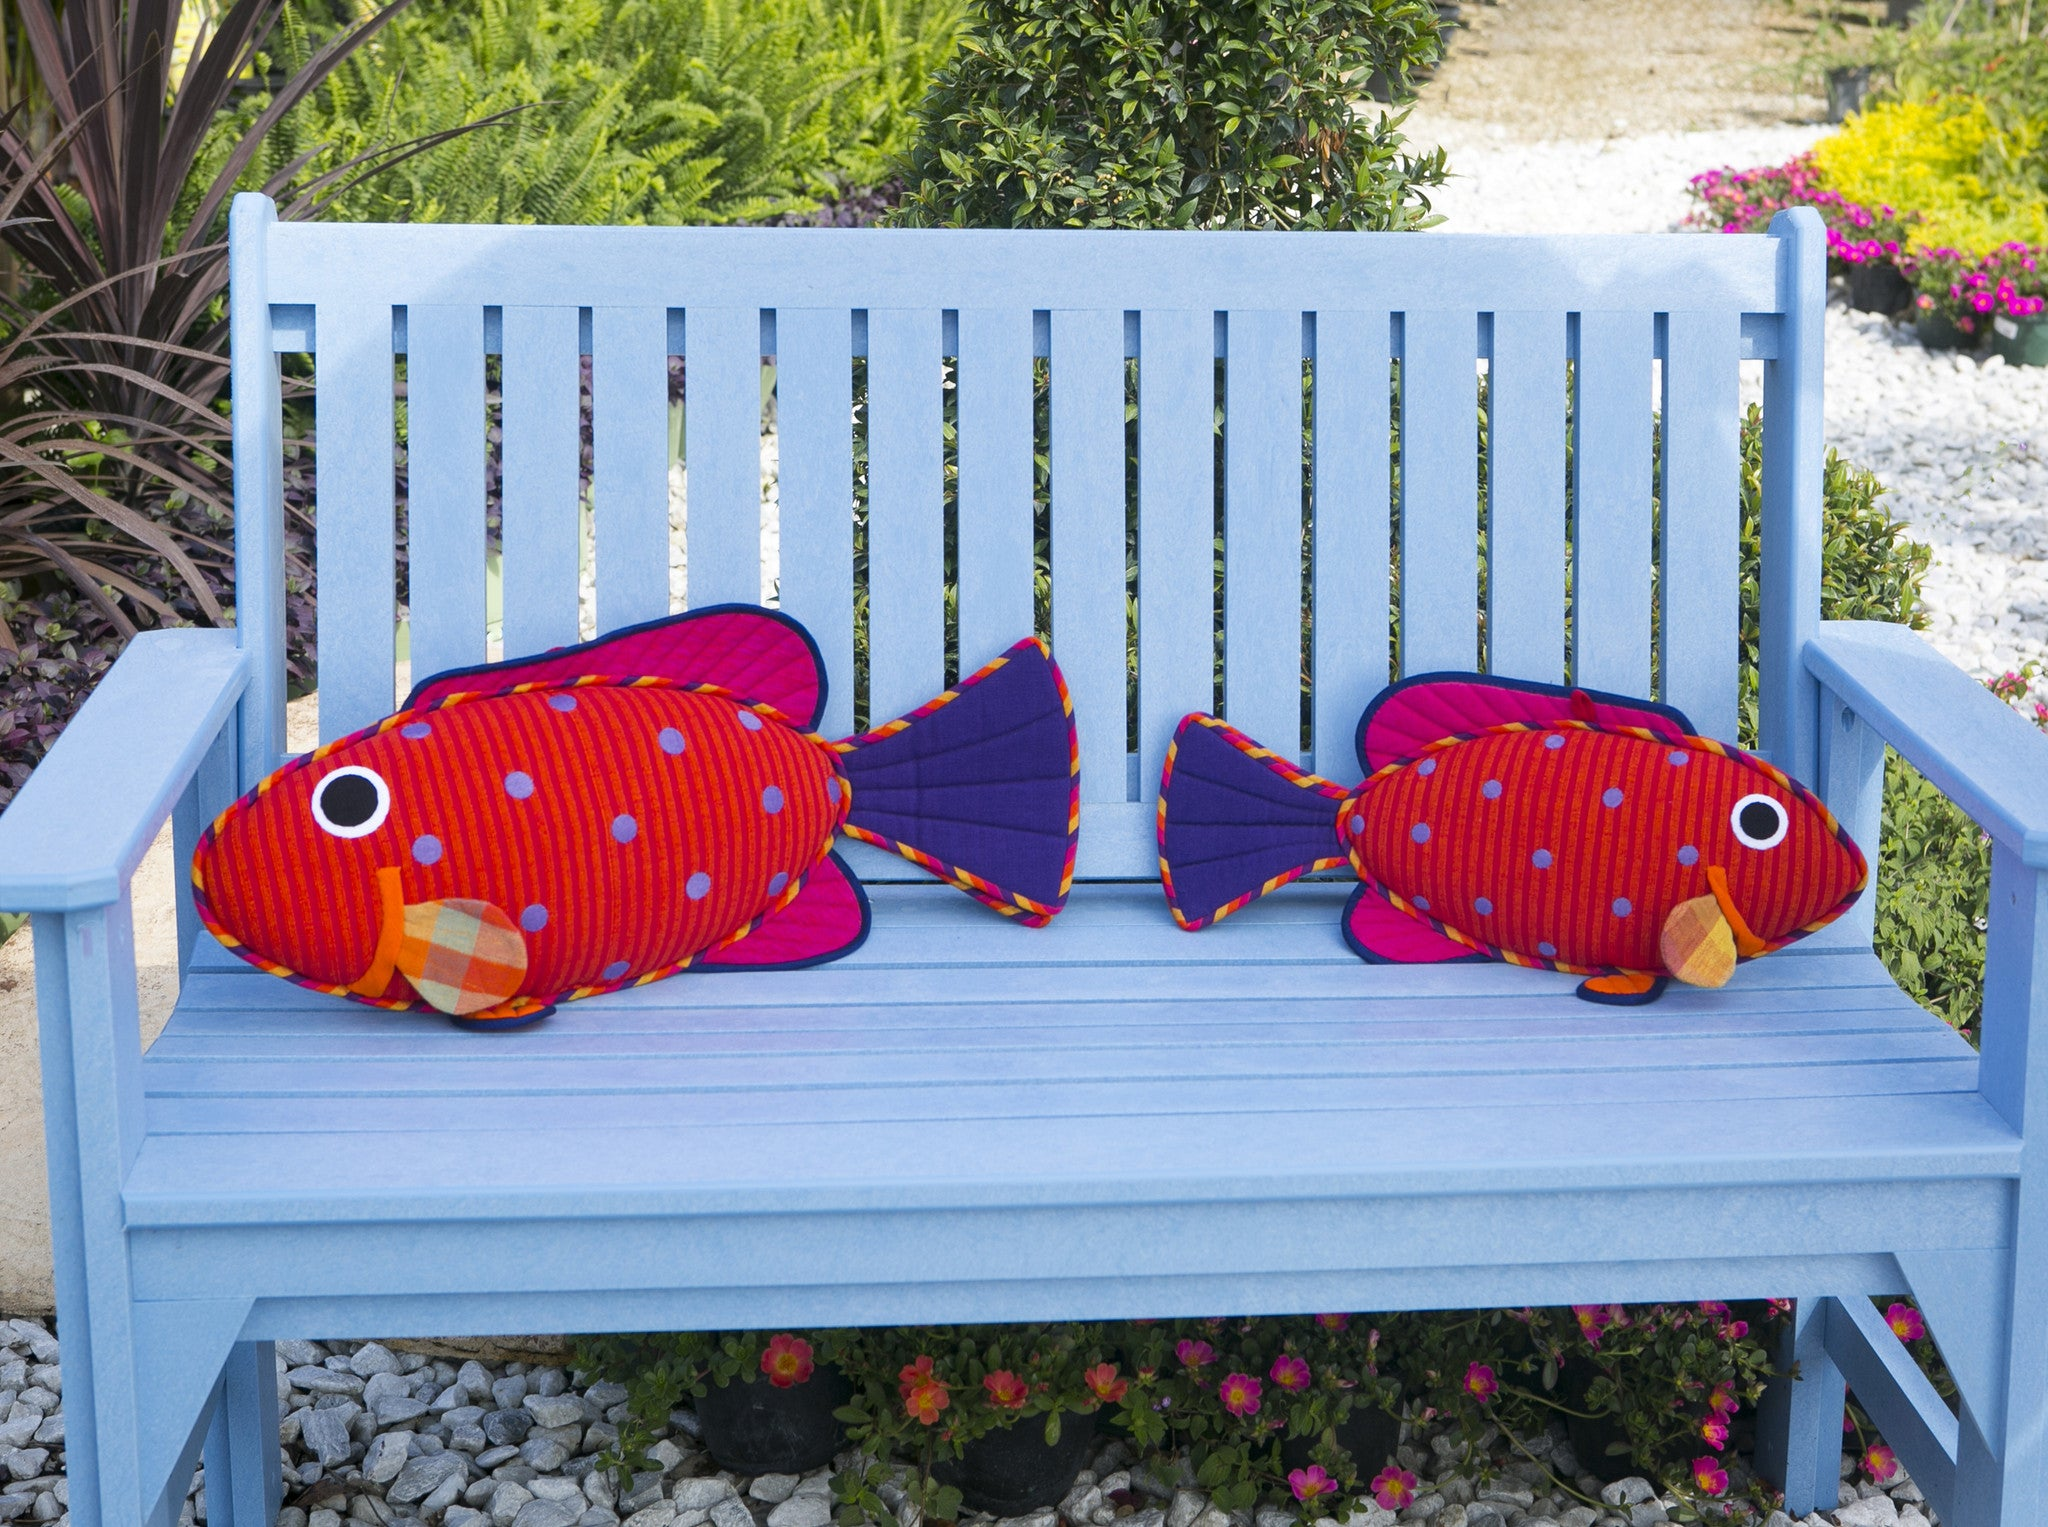 Emma, the Vermillion Rock Cod – Bursting with personality! (small & large sizes)